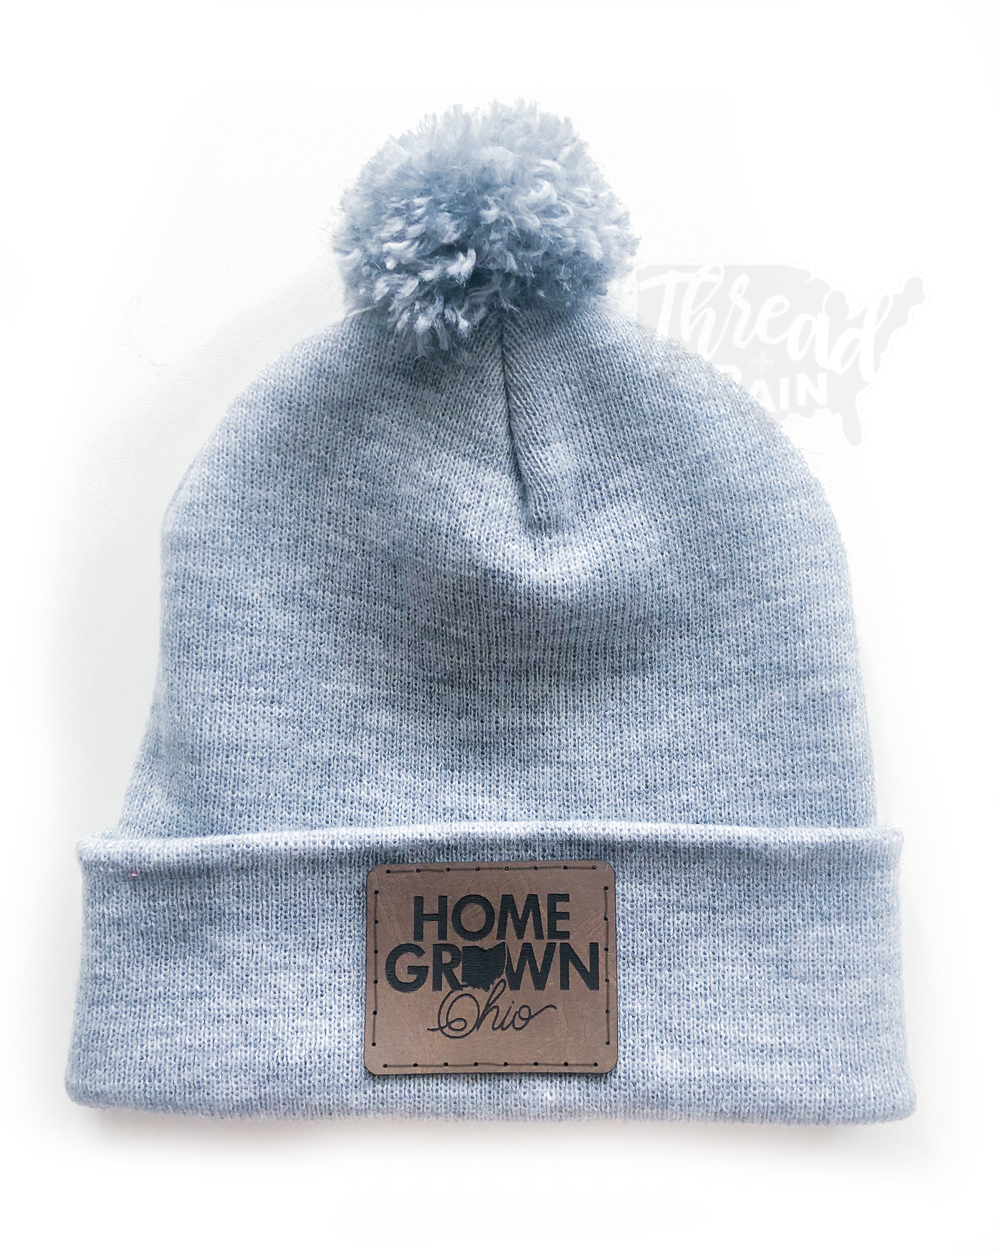 Ohio :: Home Grown PATCHED HAT